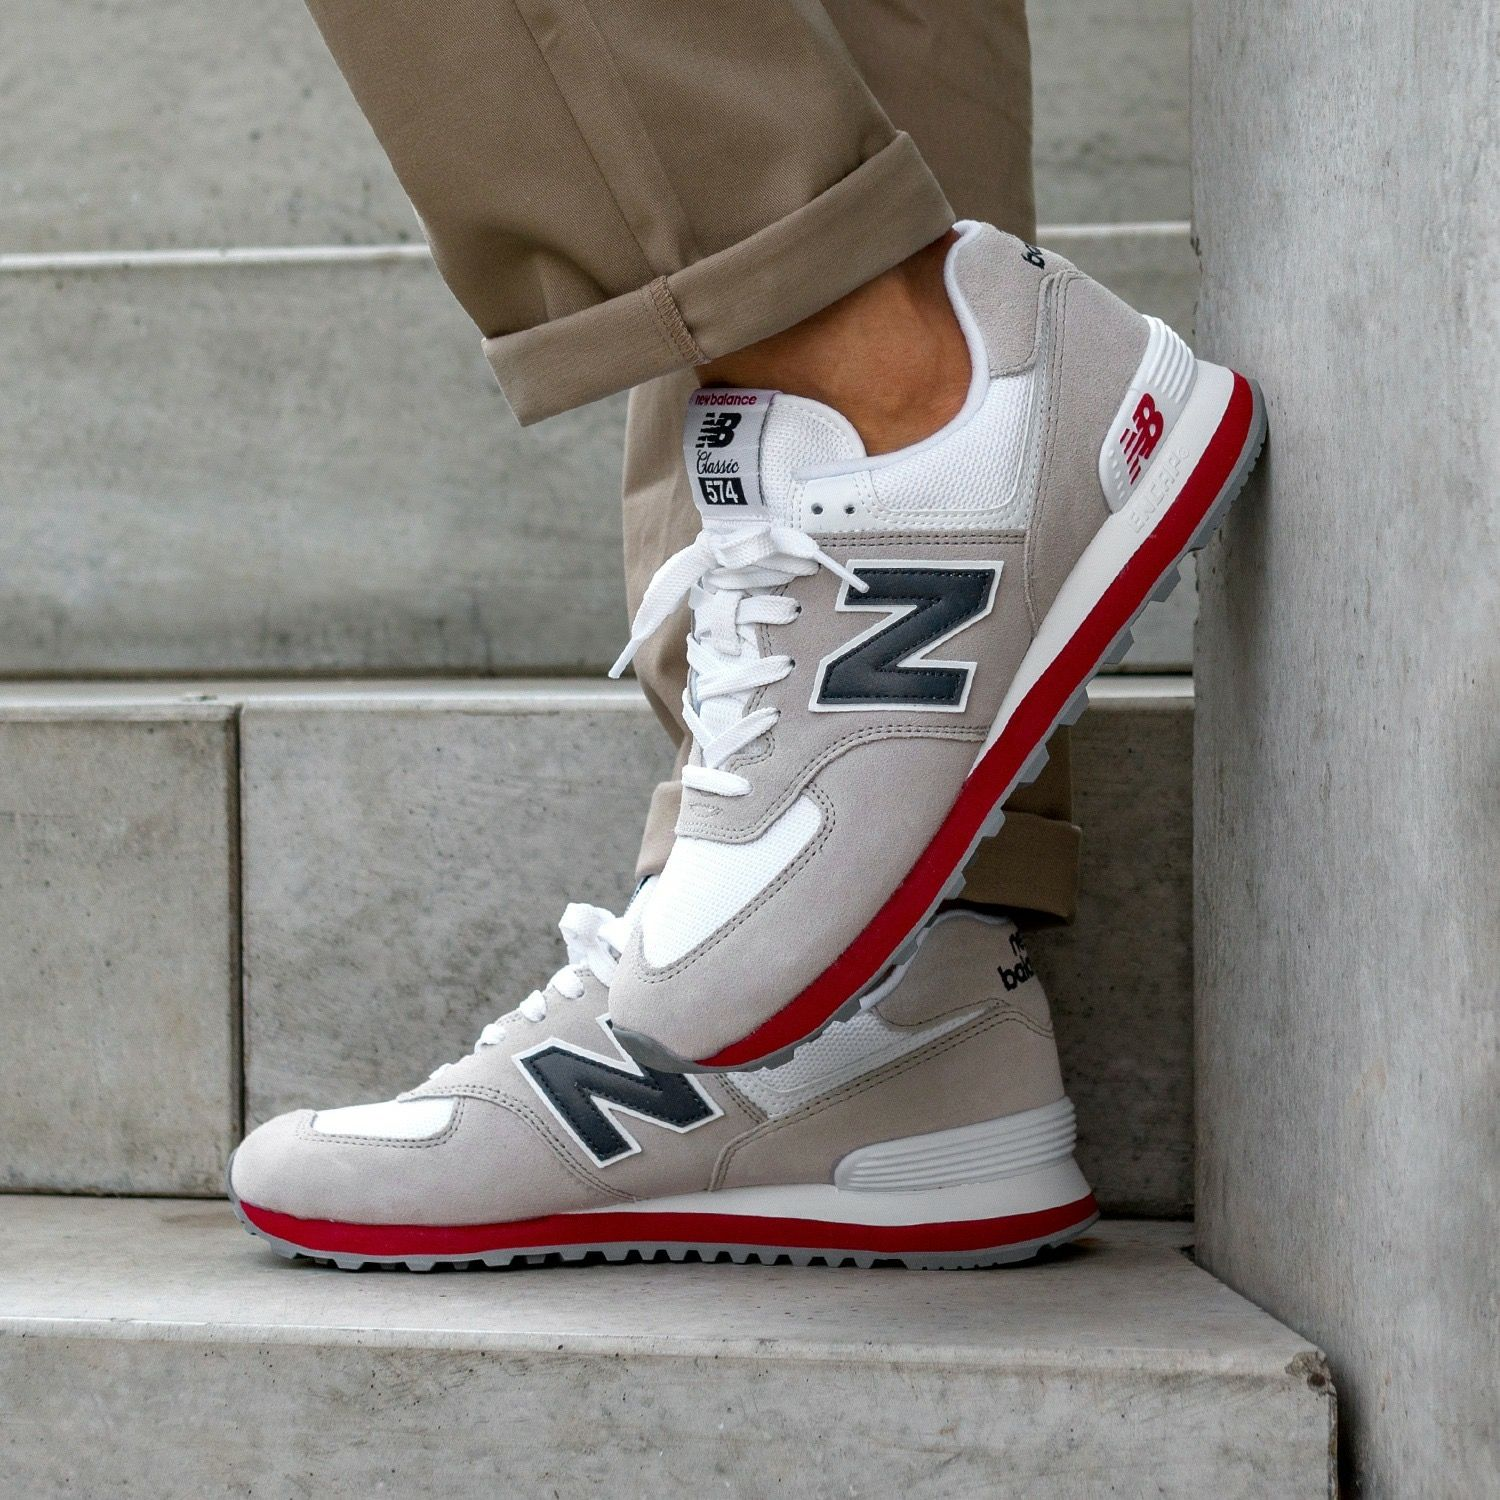 New Balance 574 | New balance sneakers mens, New balance ...